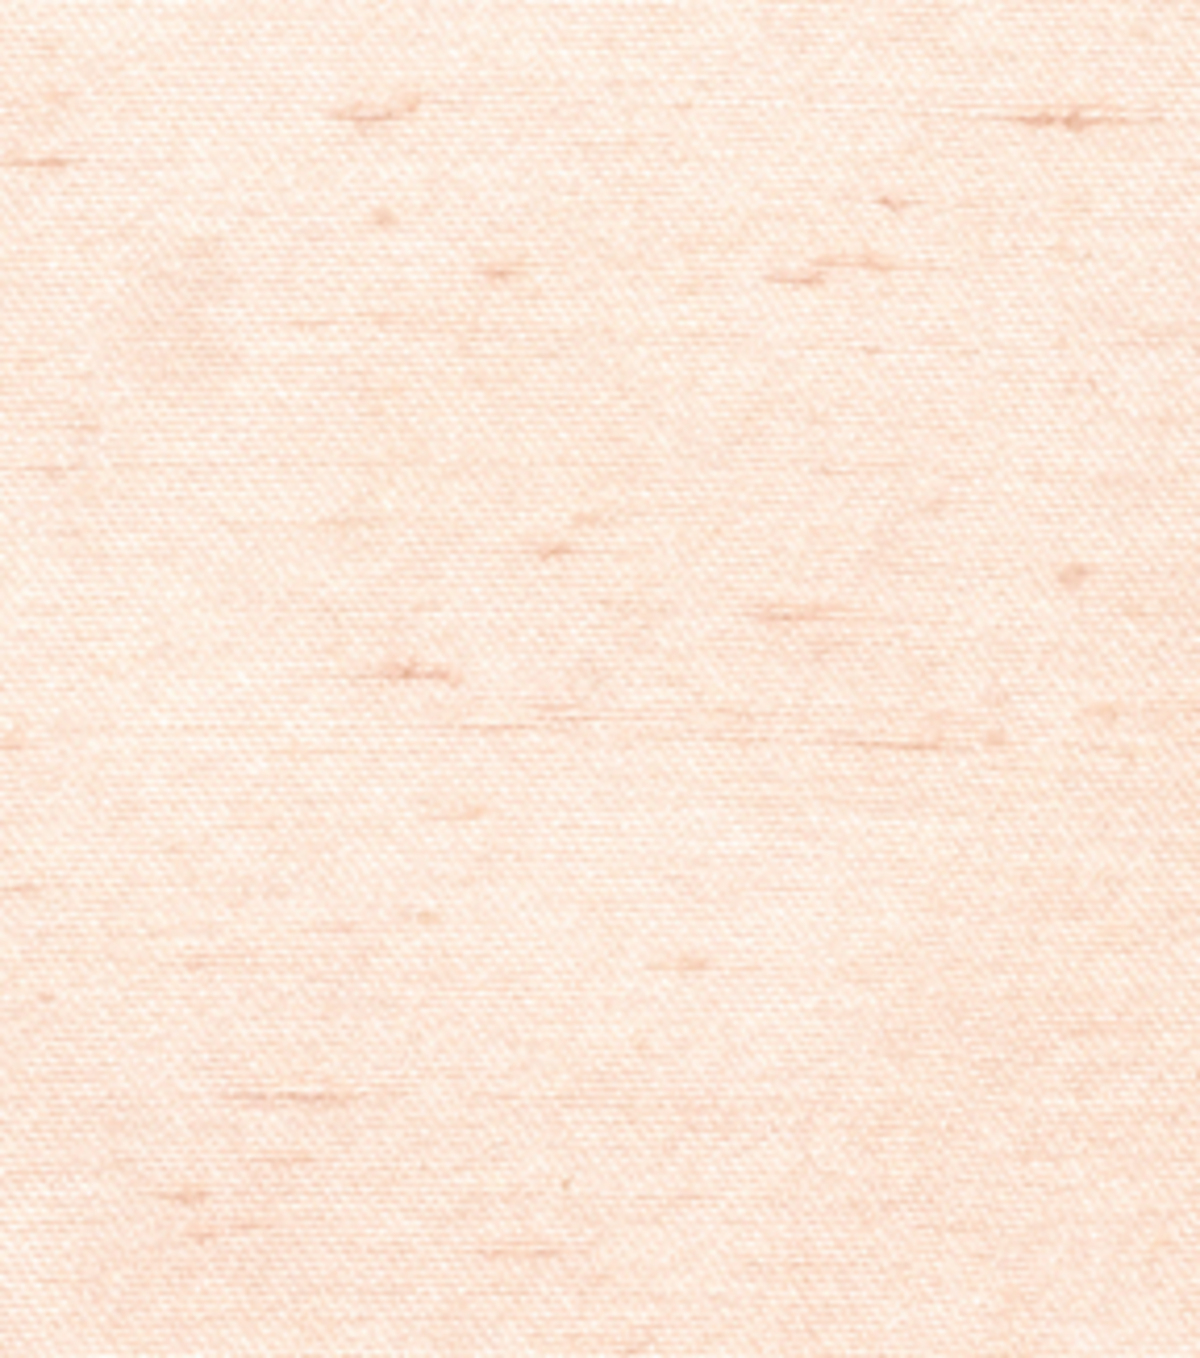 Home Decor 8\u0022x8\u0022 Fabric Swatch-Signature Series Antique Satin Blush